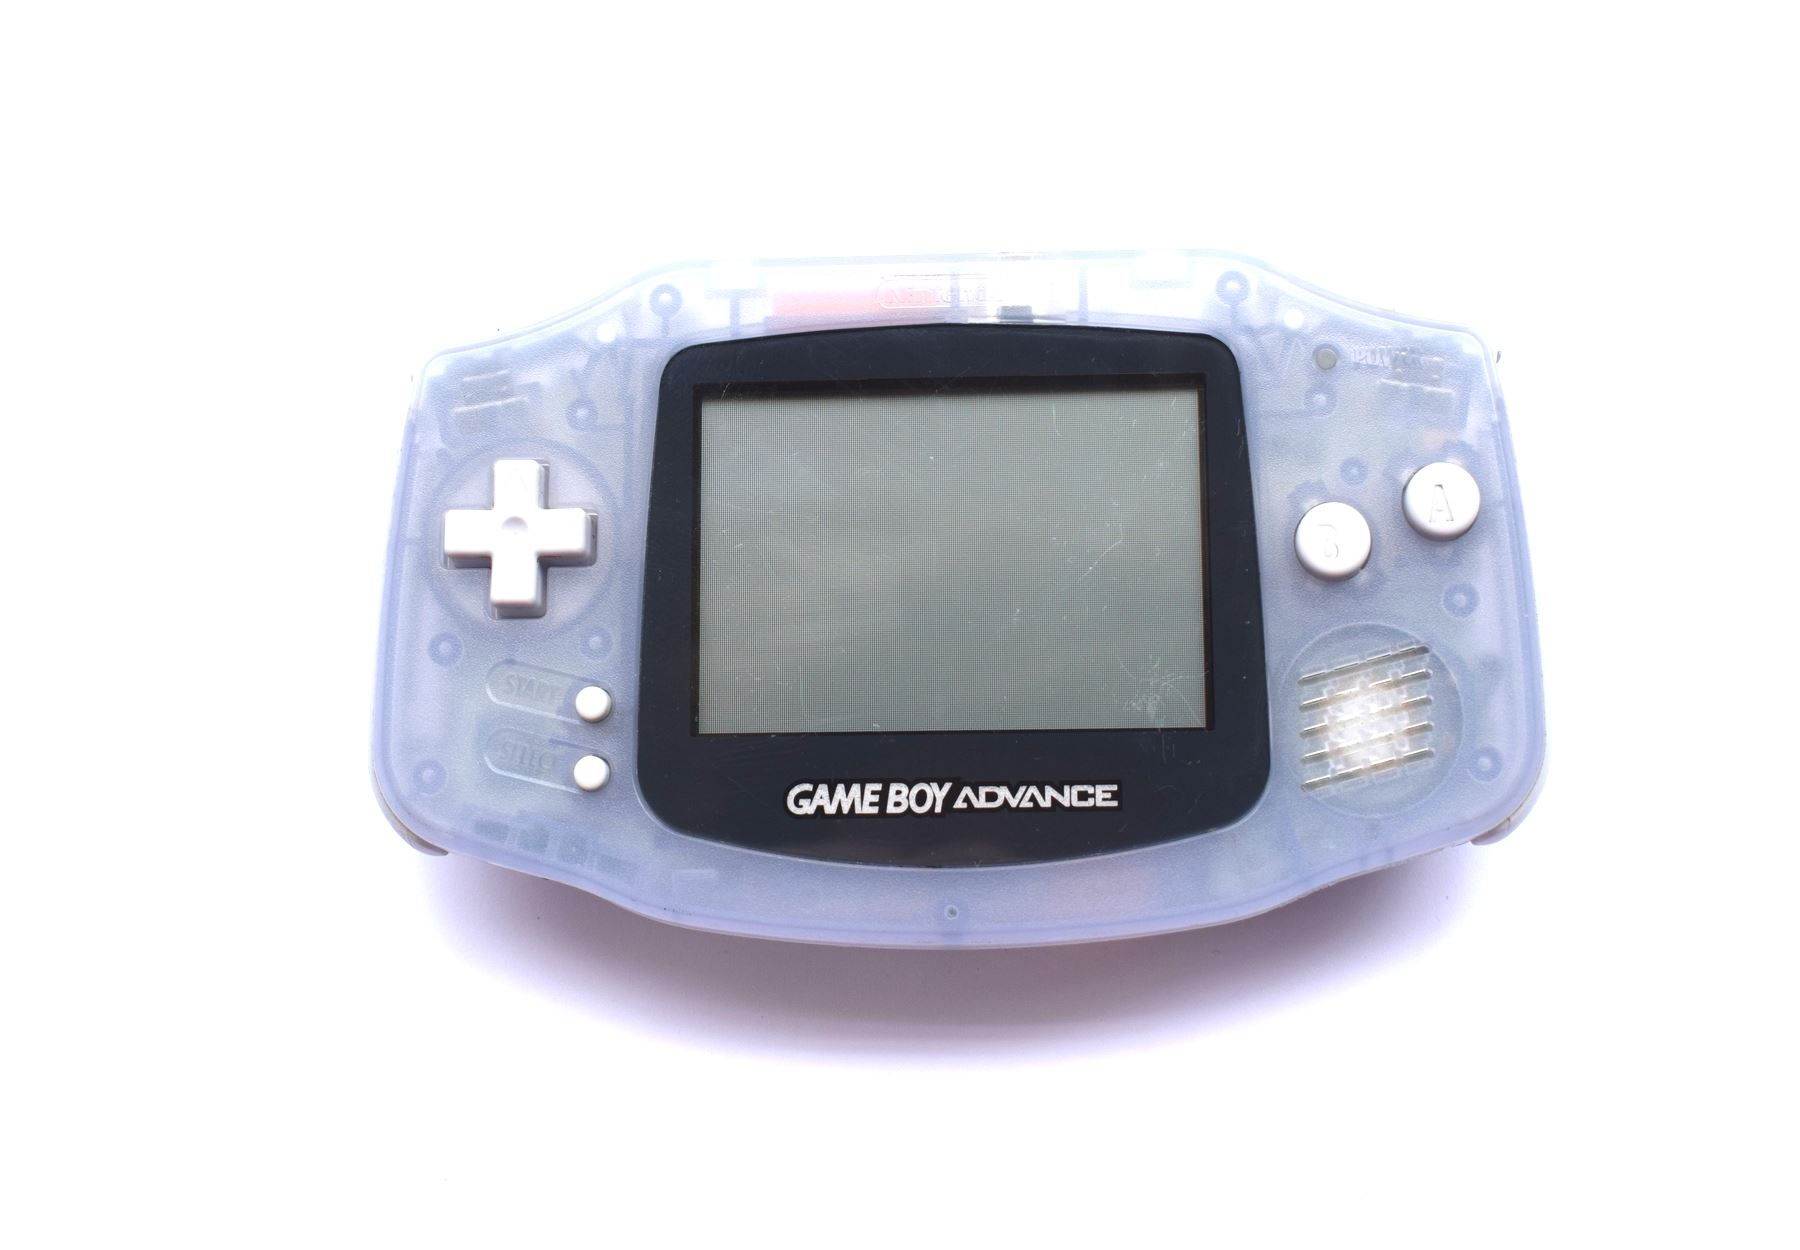 Nintendo-Gameboy-Advance-GBA-Handheld-Console-System-8-Colours-Available thumbnail 19